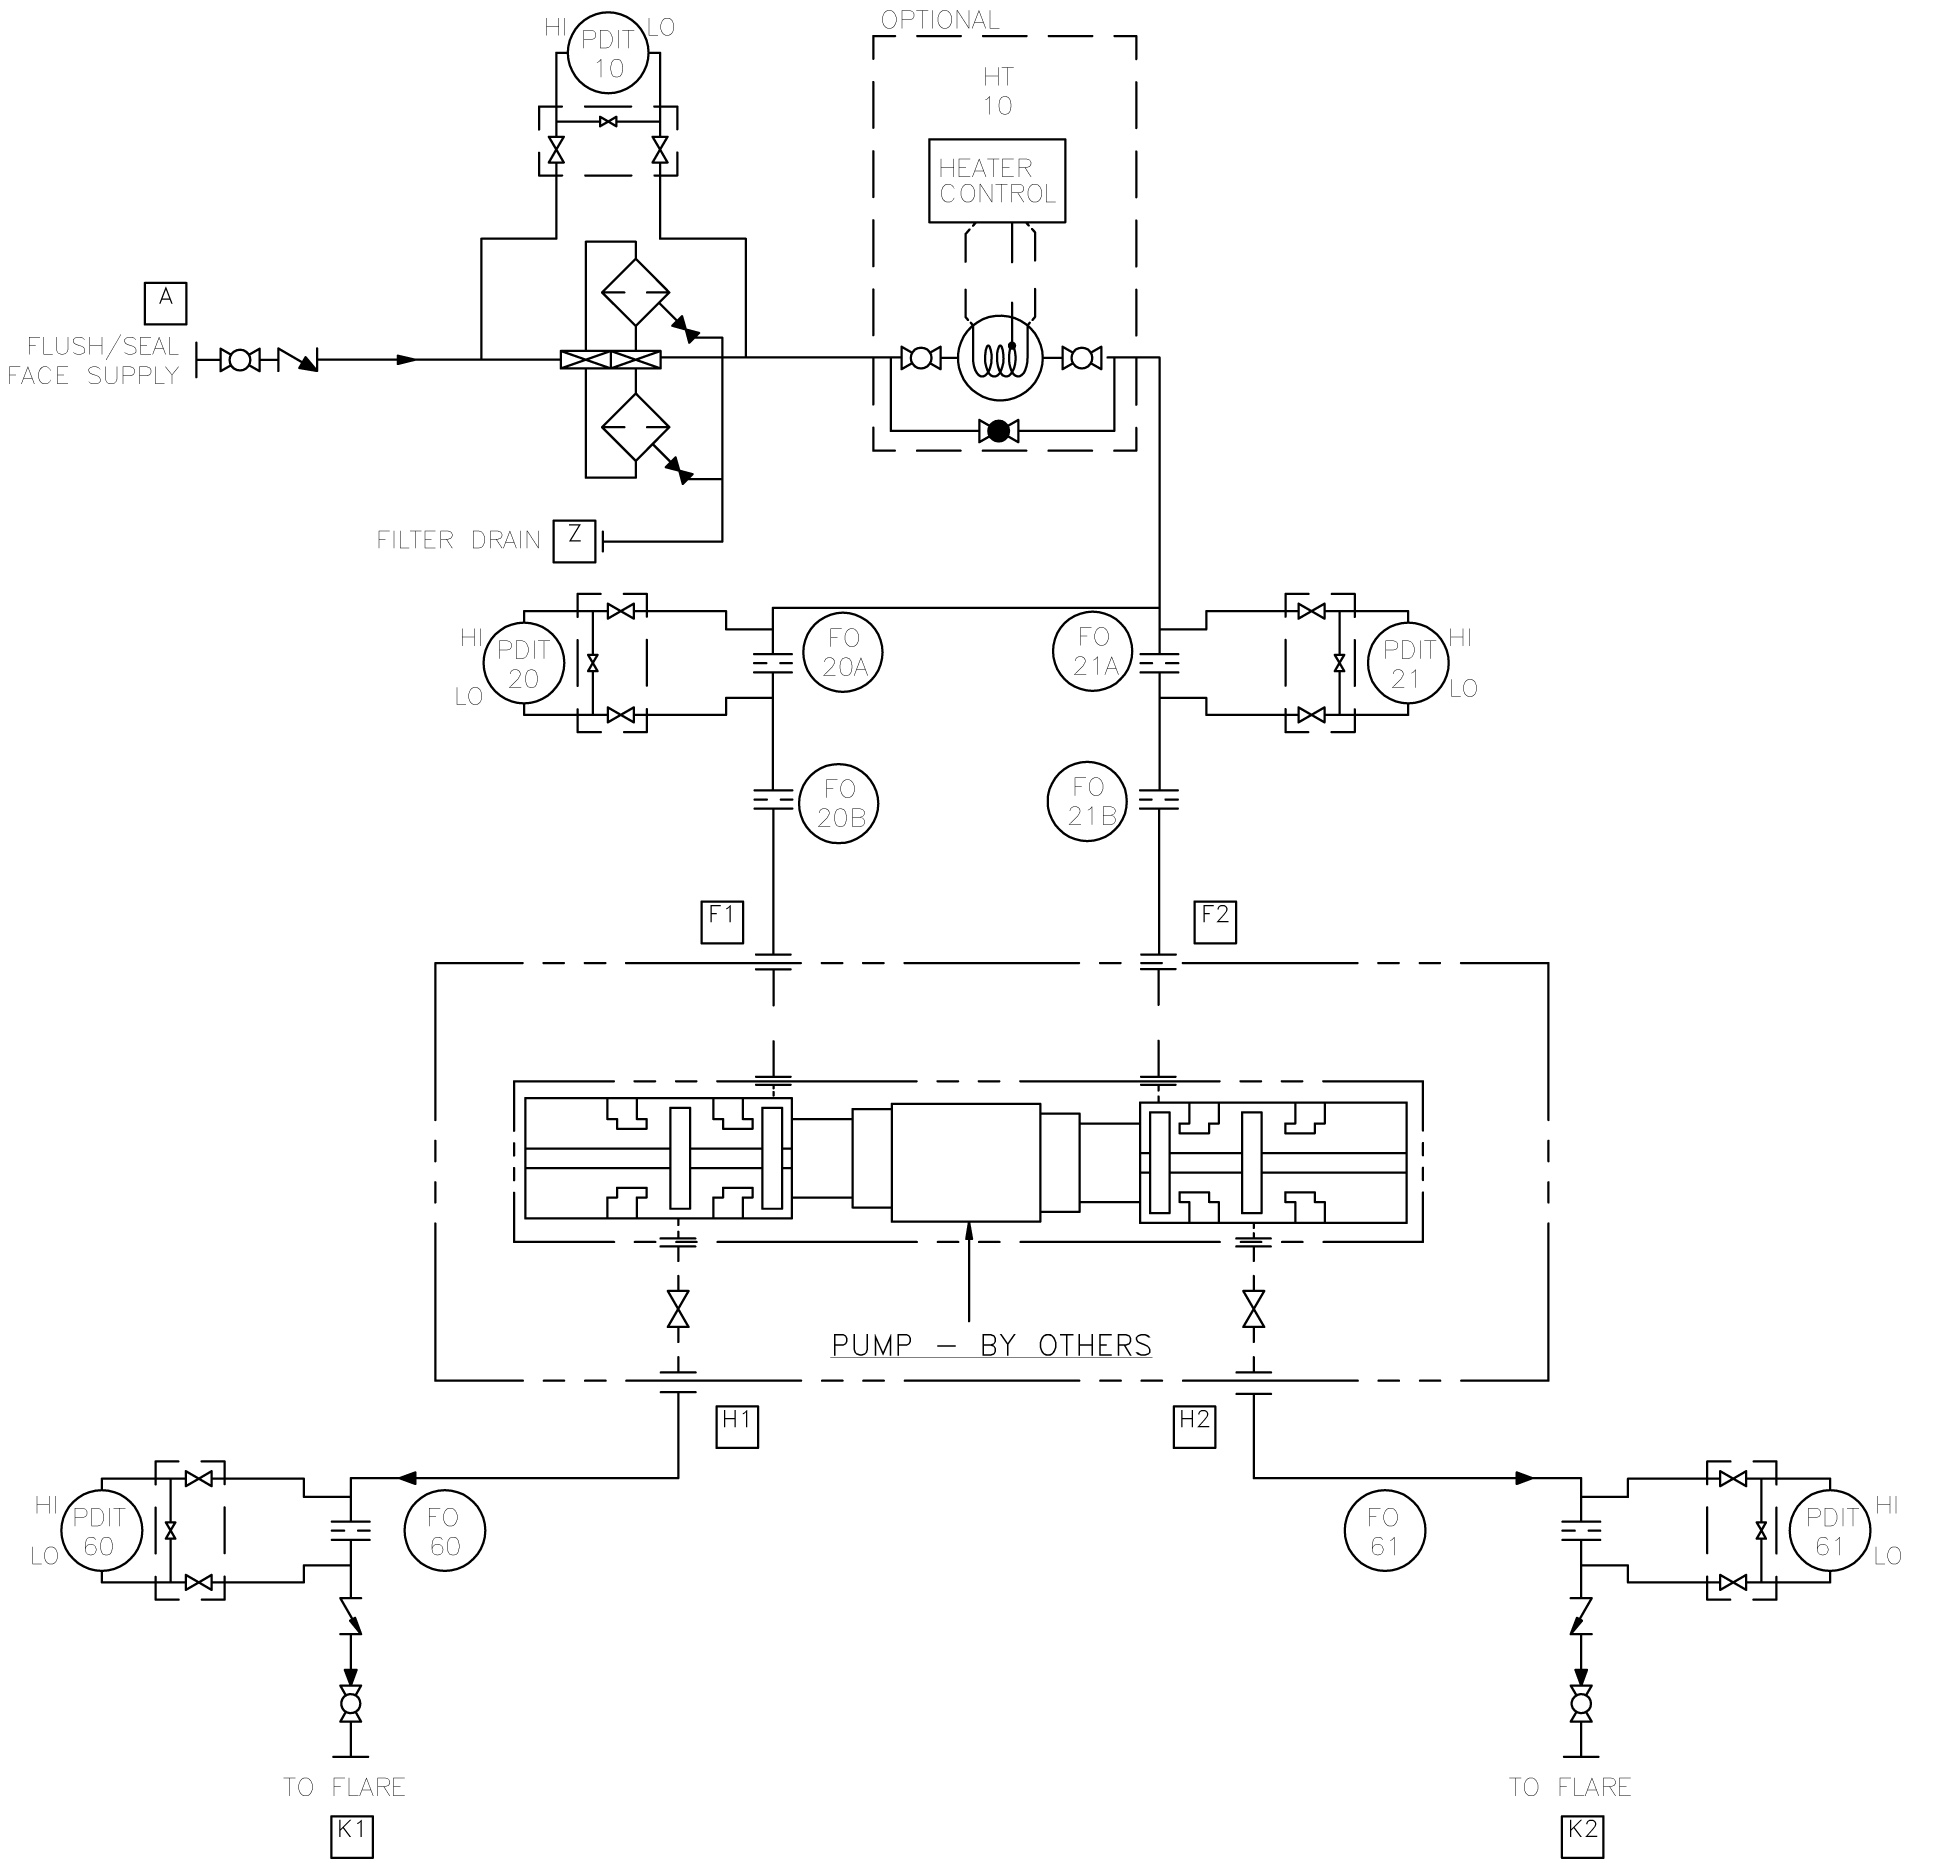 centrifugal pump mechanical seal diagram 1993 ford f150 radio wiring sealing supercritical co2 applications